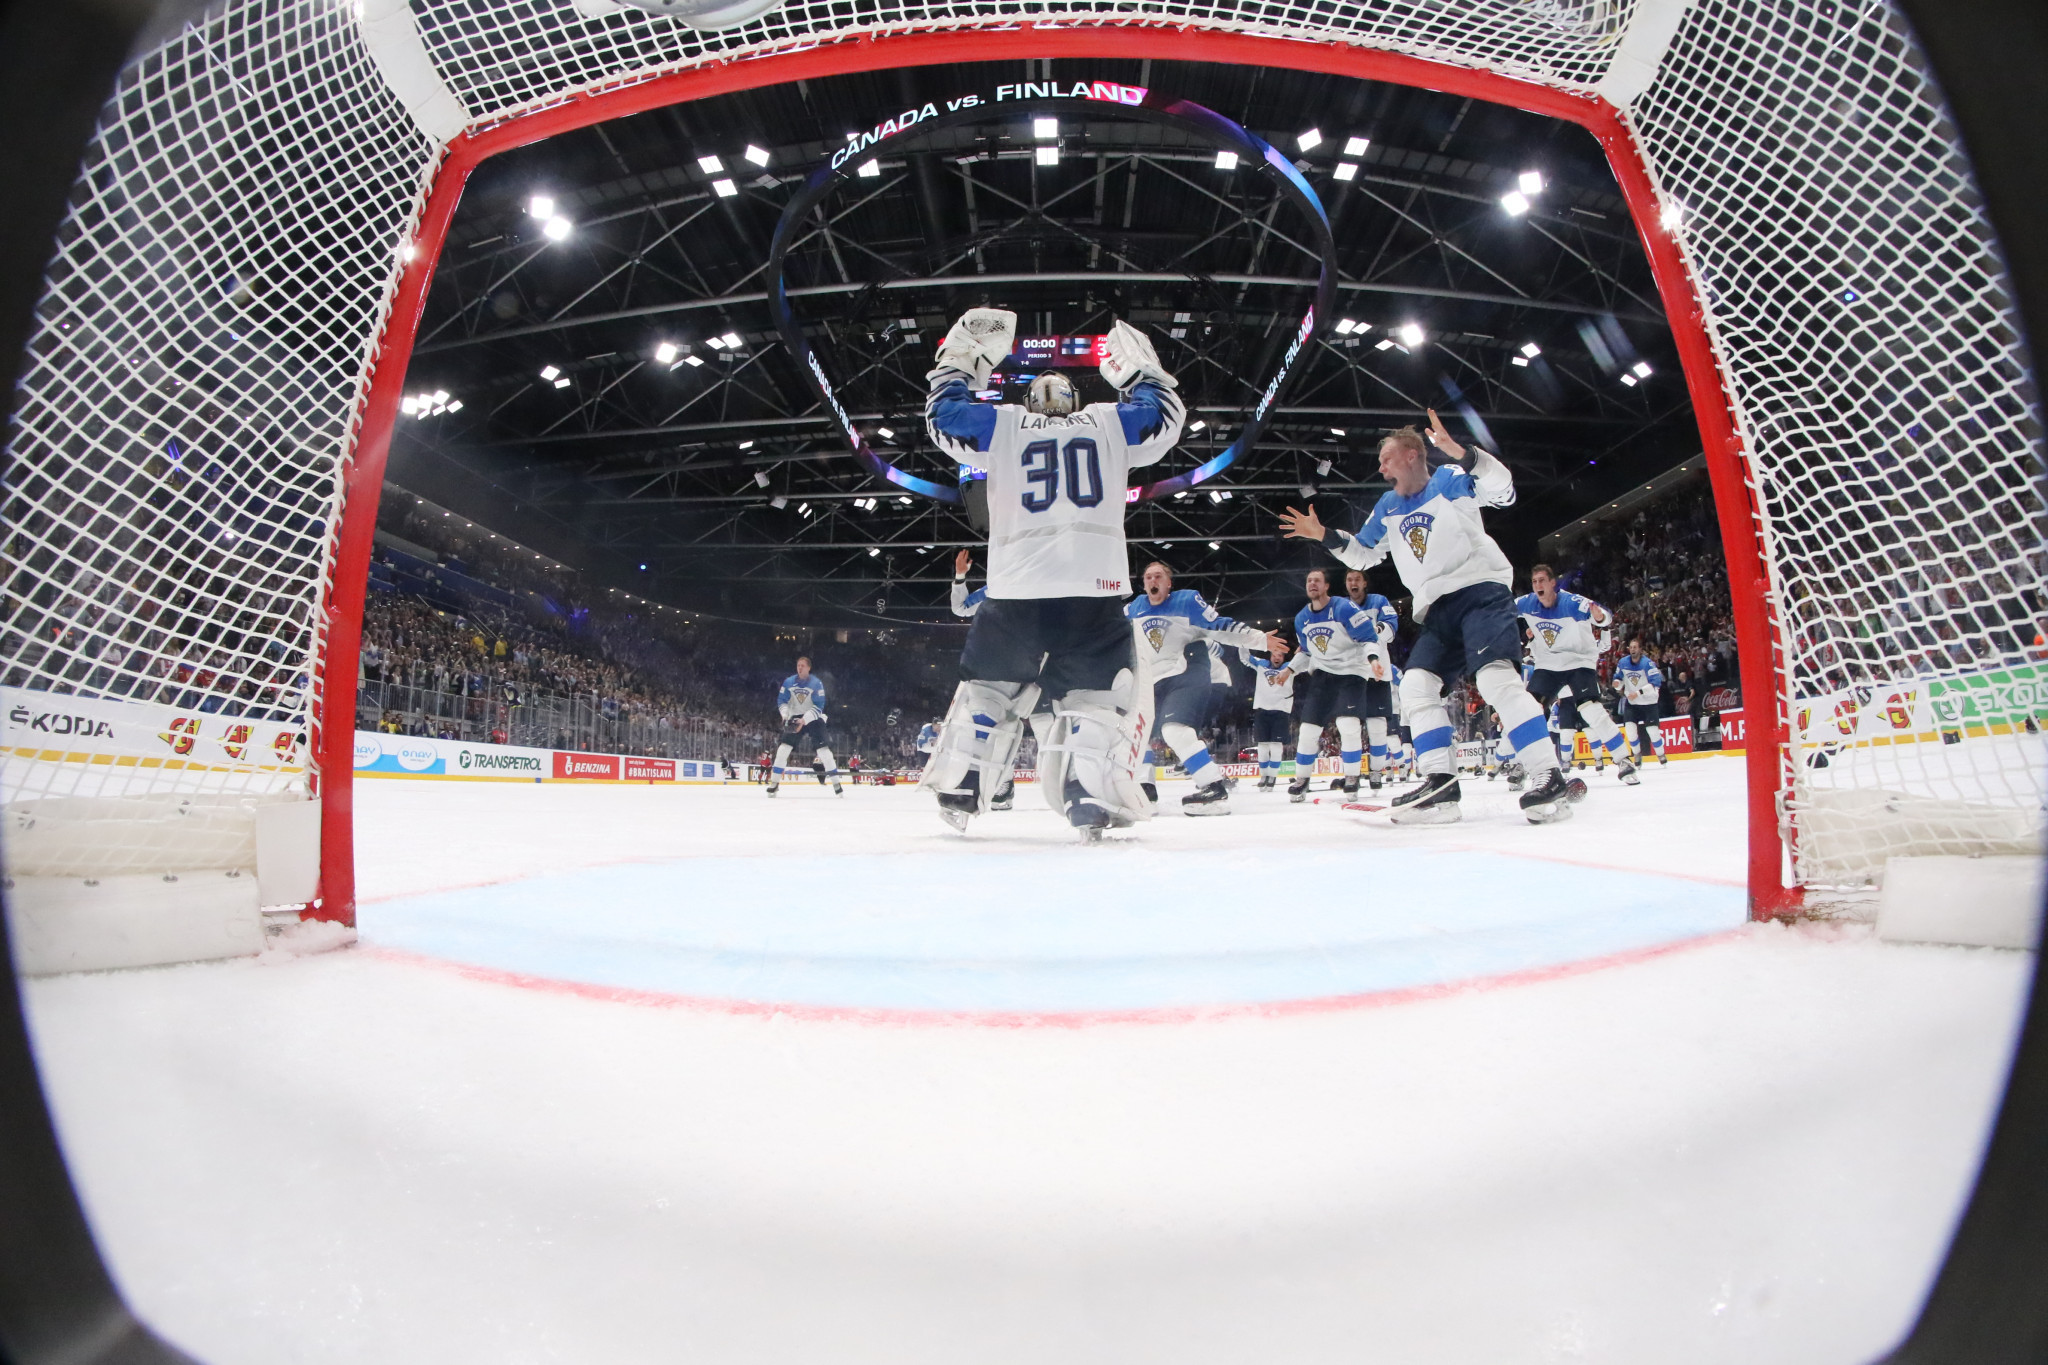 Finland triumphed at last month's IIHF World Championship in Slovakia ©Getty Images